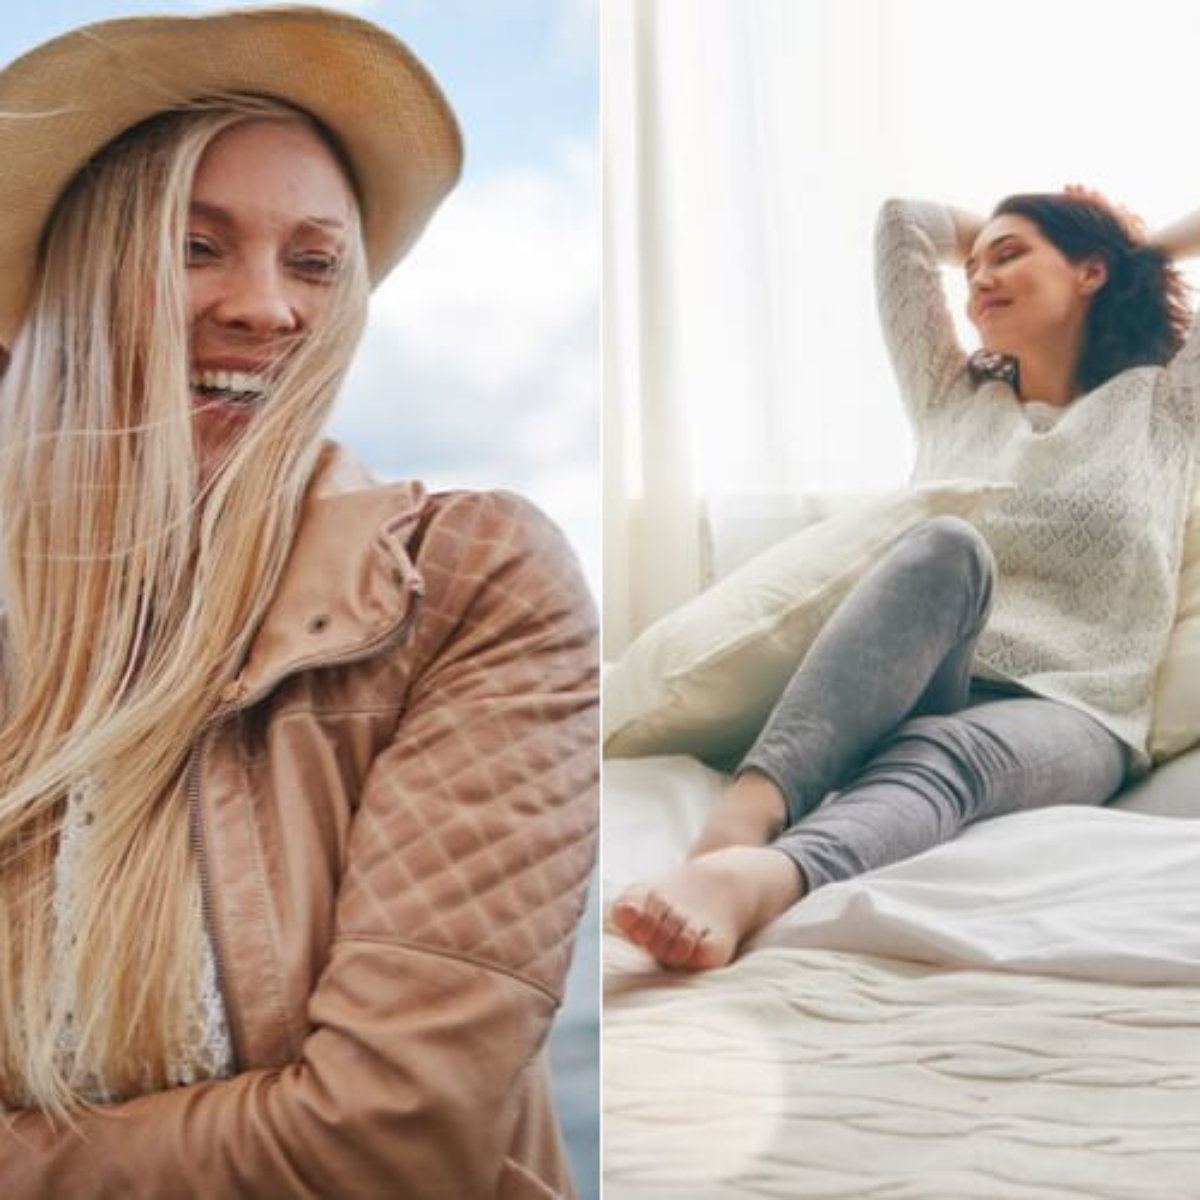 Girl smiling while hair blowing in wind, Girl lounging on couch